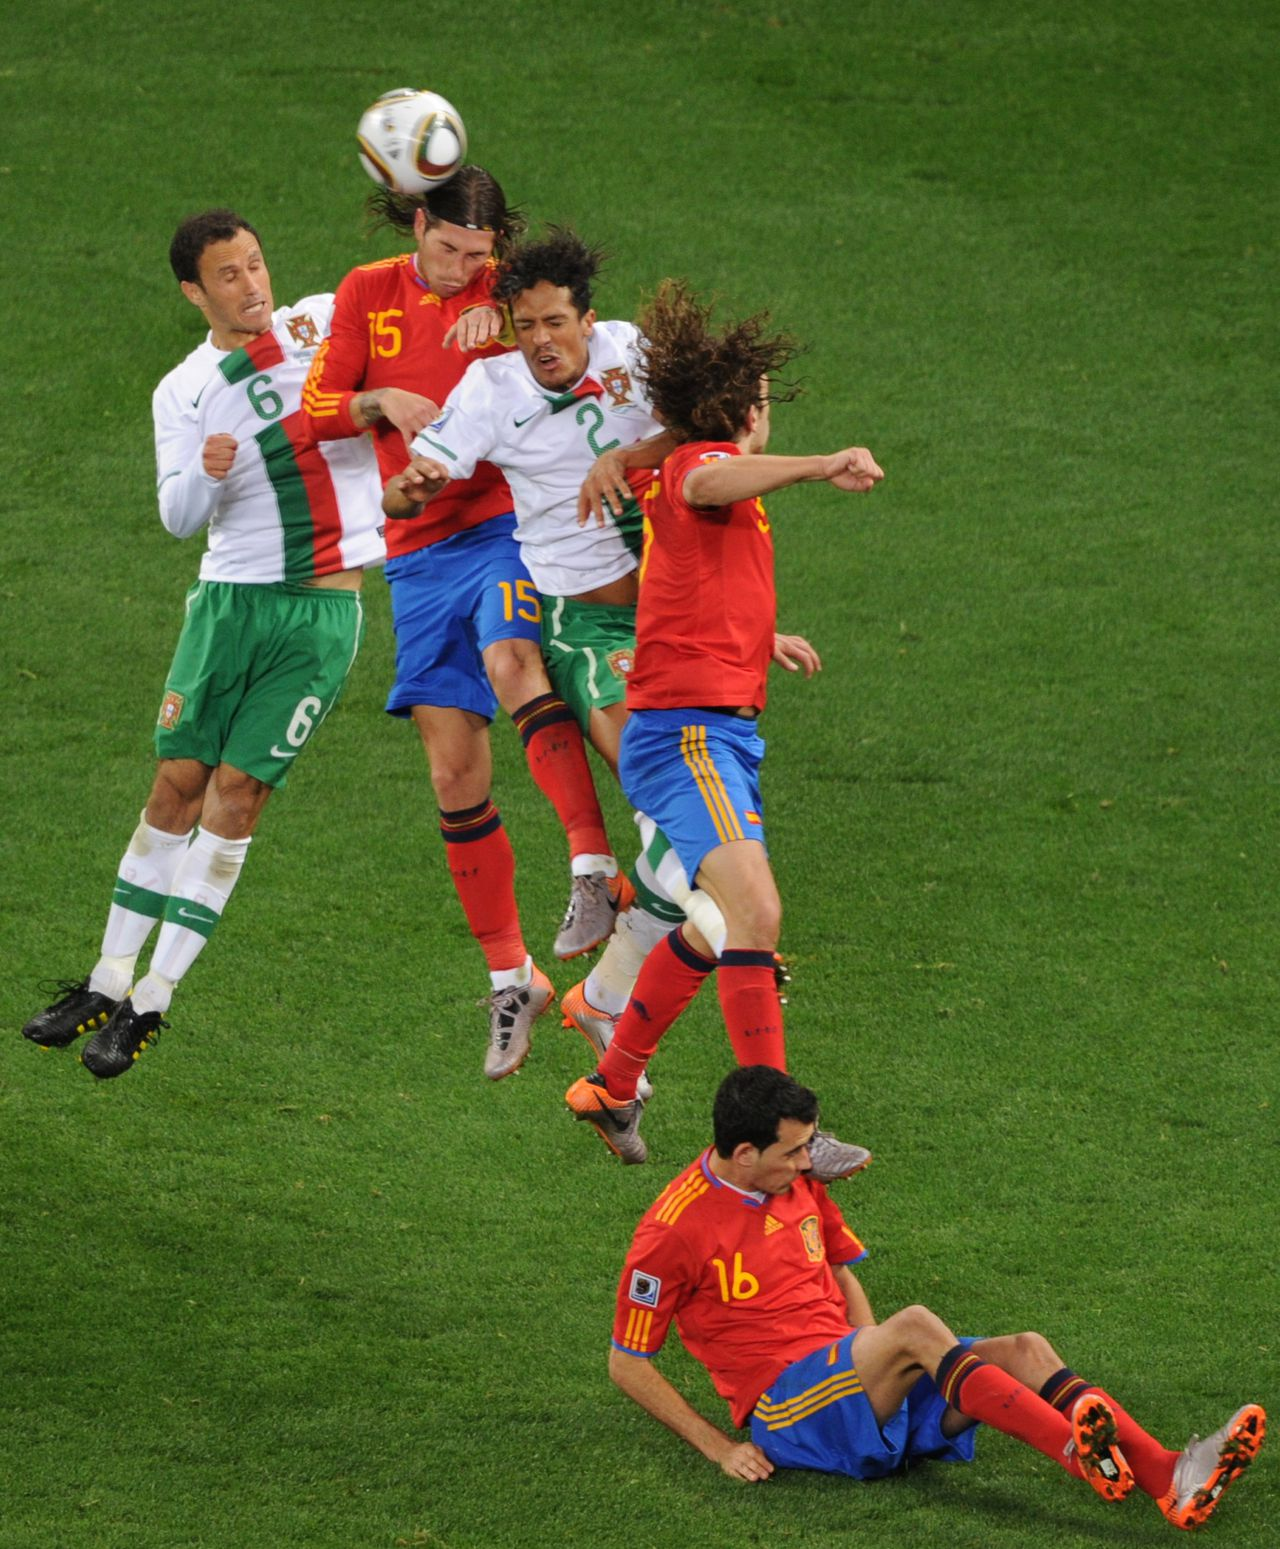 (From L) Portugal's defender Ricardo Carvalho, Spain's defender Sergio Ramos and Portugal's defender Bruno Alves fight for the ball during the 2010 World Cup Round of 16 football match between Spain and Portugal on June 29, 2010 at Green Point stadium in Capetown. NO PUSH TO MOBILE / MOBILE USE SOLELY WITHIN EDITORIAL ARTICLE = AFP PHOTO / CARL DE SOUZA